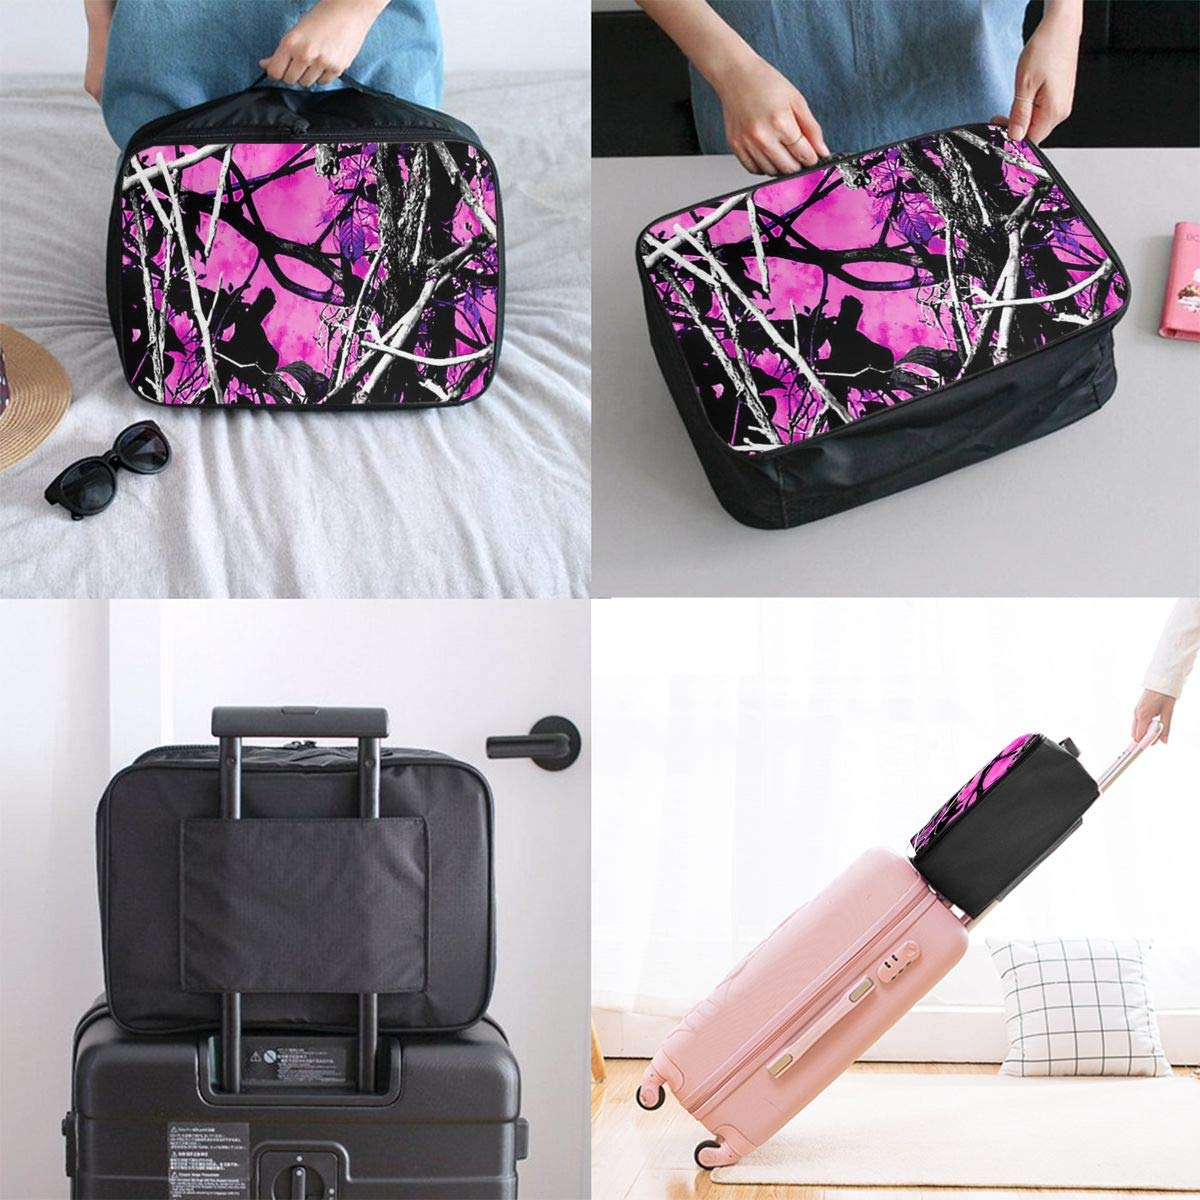 Lightweight Large Capacity Duffel Portable Luggage Bag Pink Camo Travel Waterproof Foldable Storage Carry Tote Bag